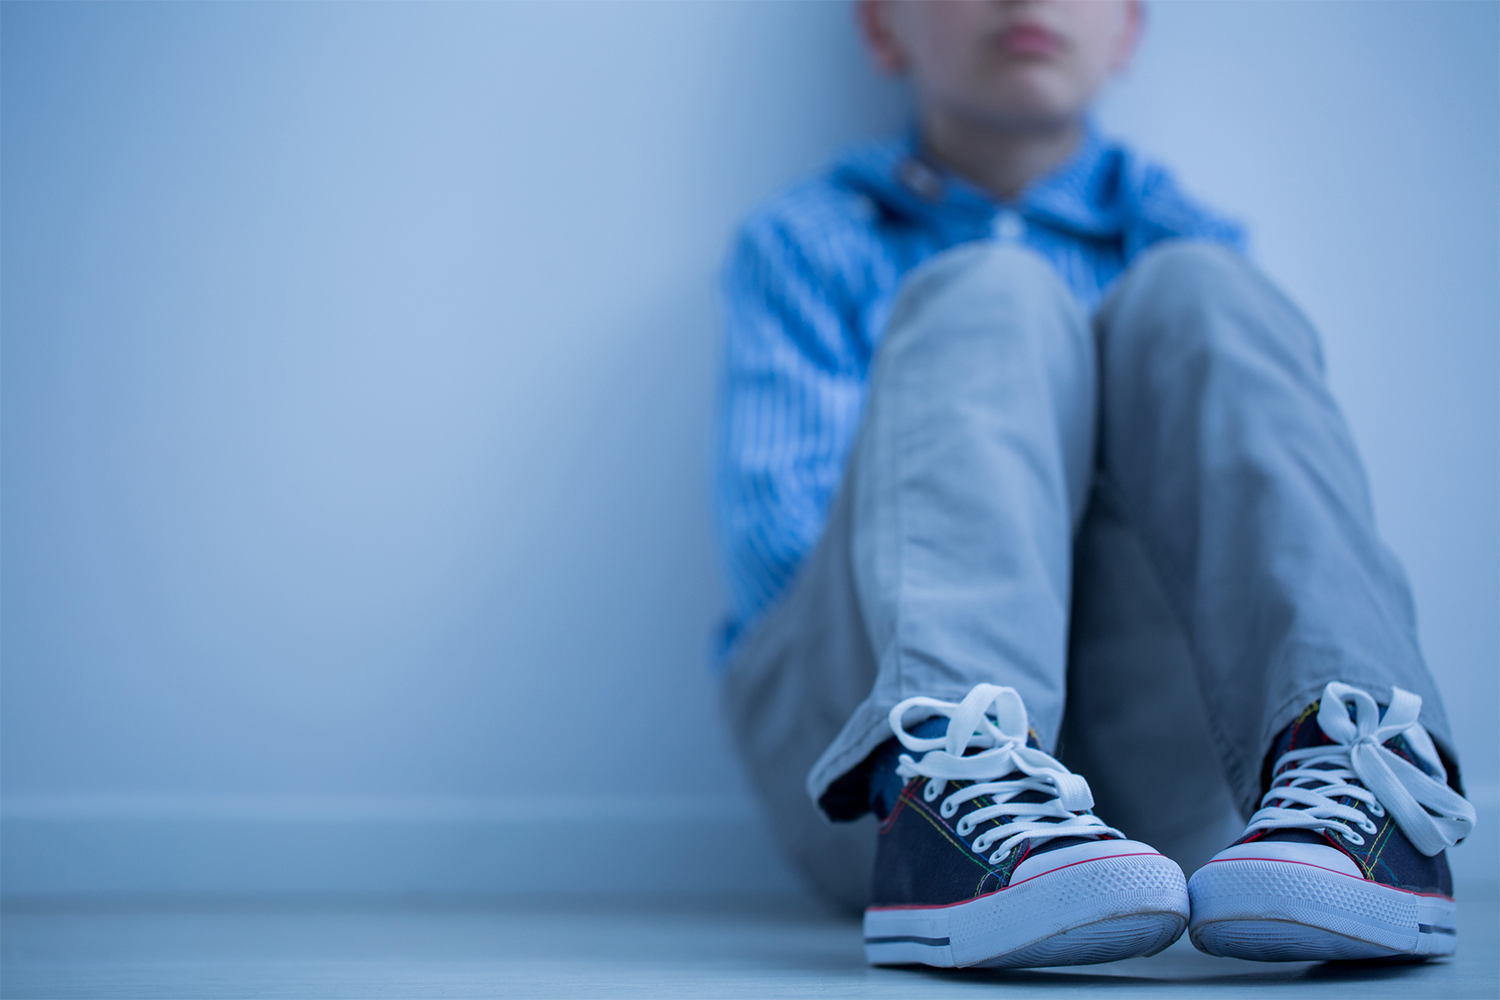 Child Neglect Signs